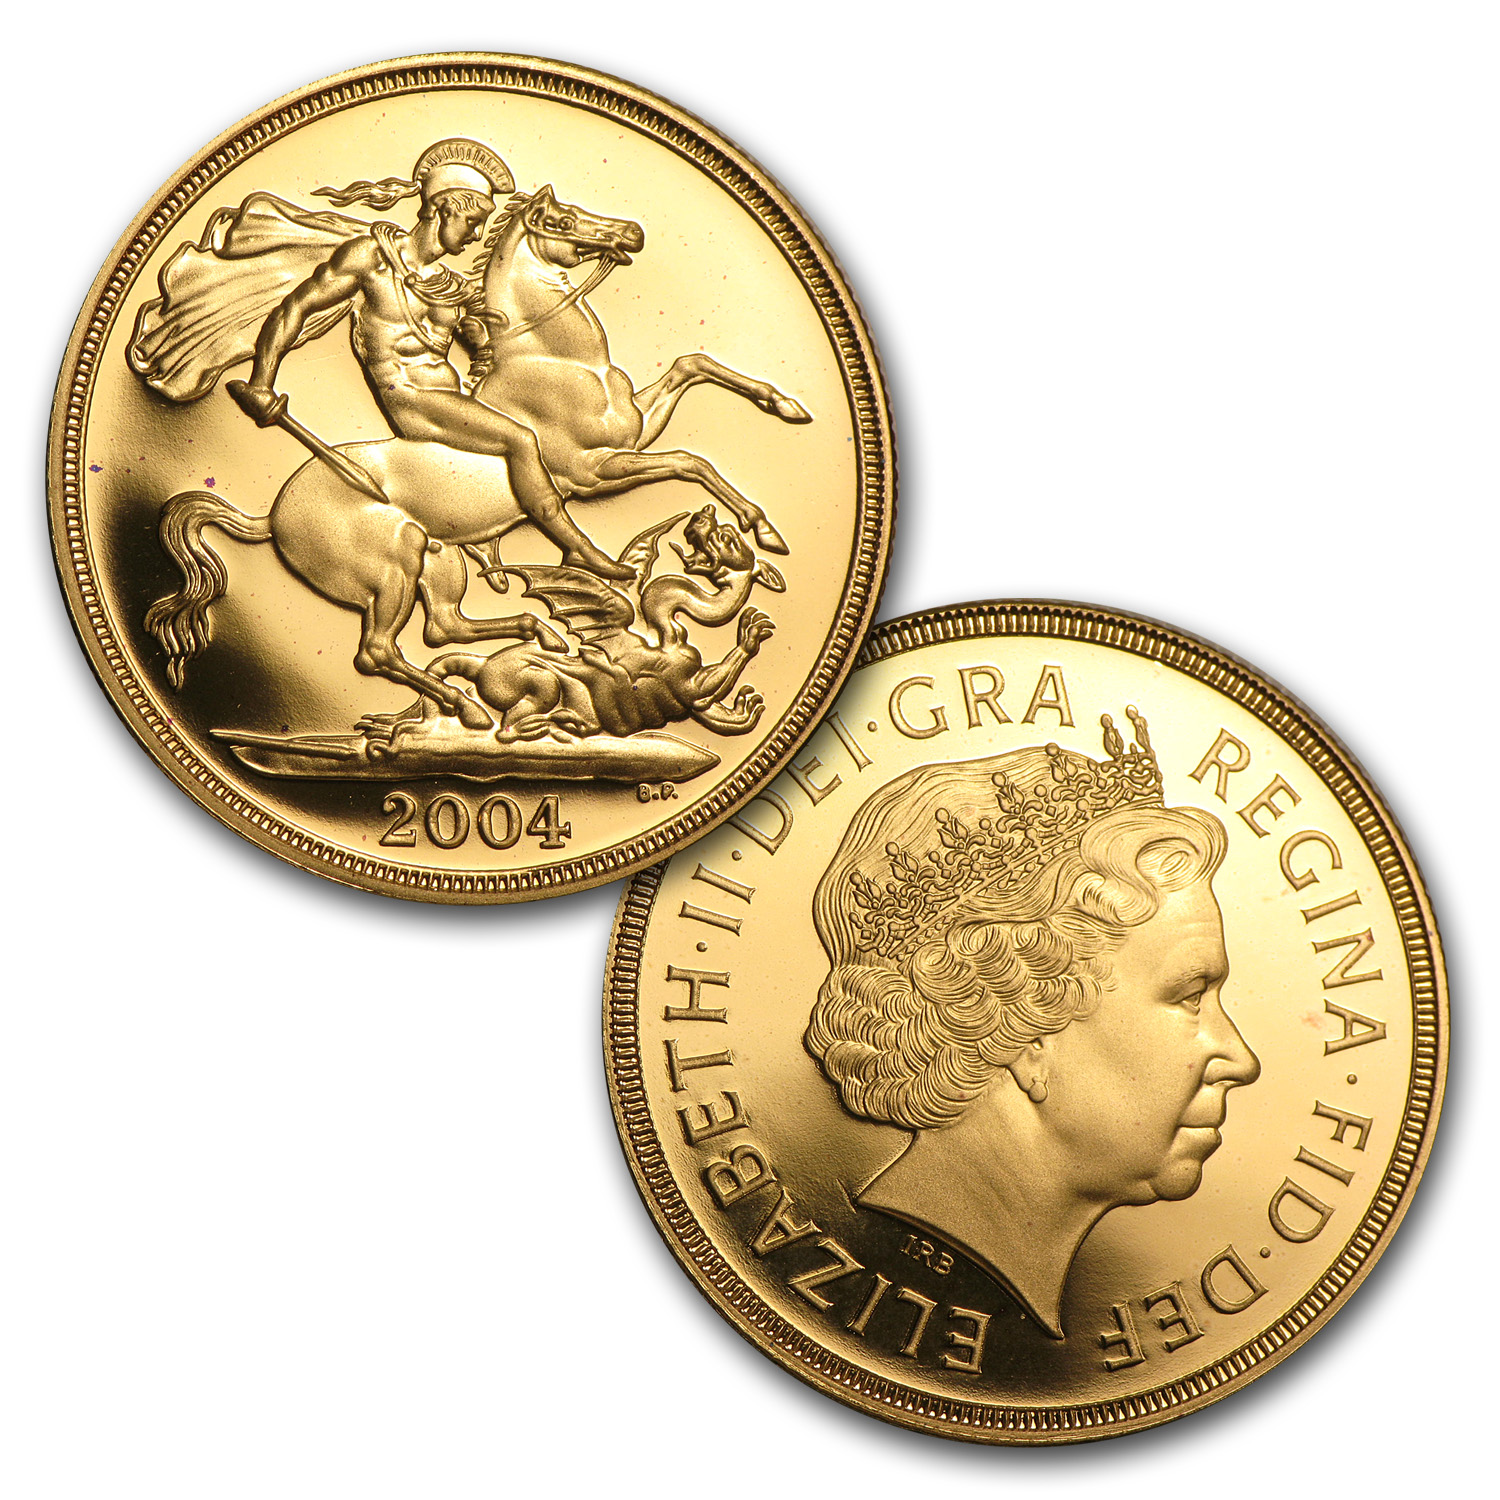 Great Britain 2004 5 Coin Gold Sovereign Proof Set